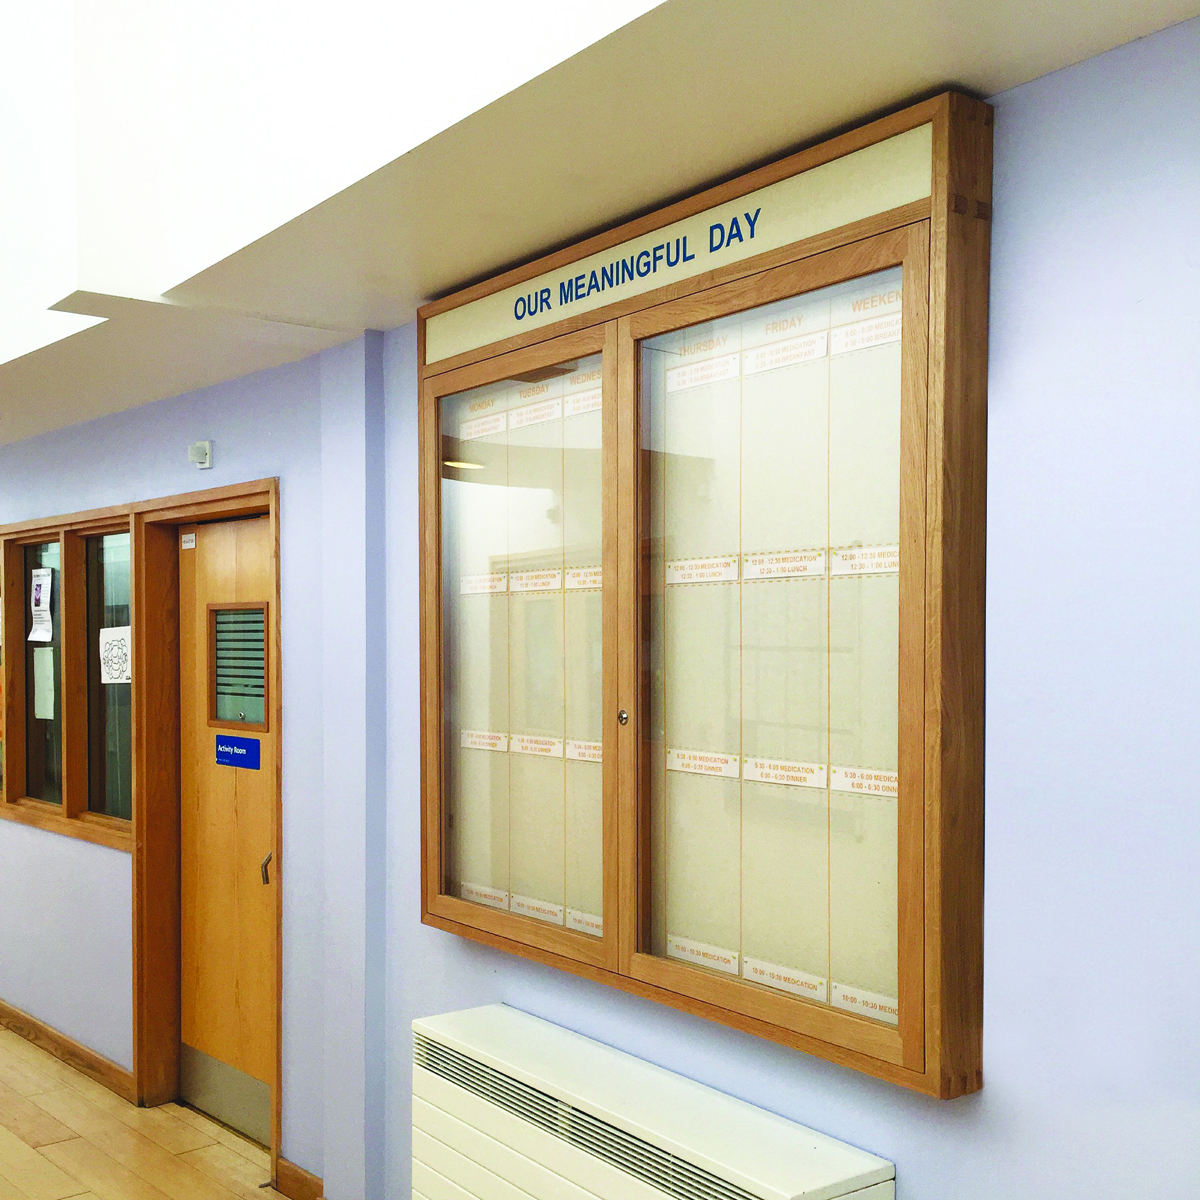 Hospital rooms a new project using art and design to for Creative notice board